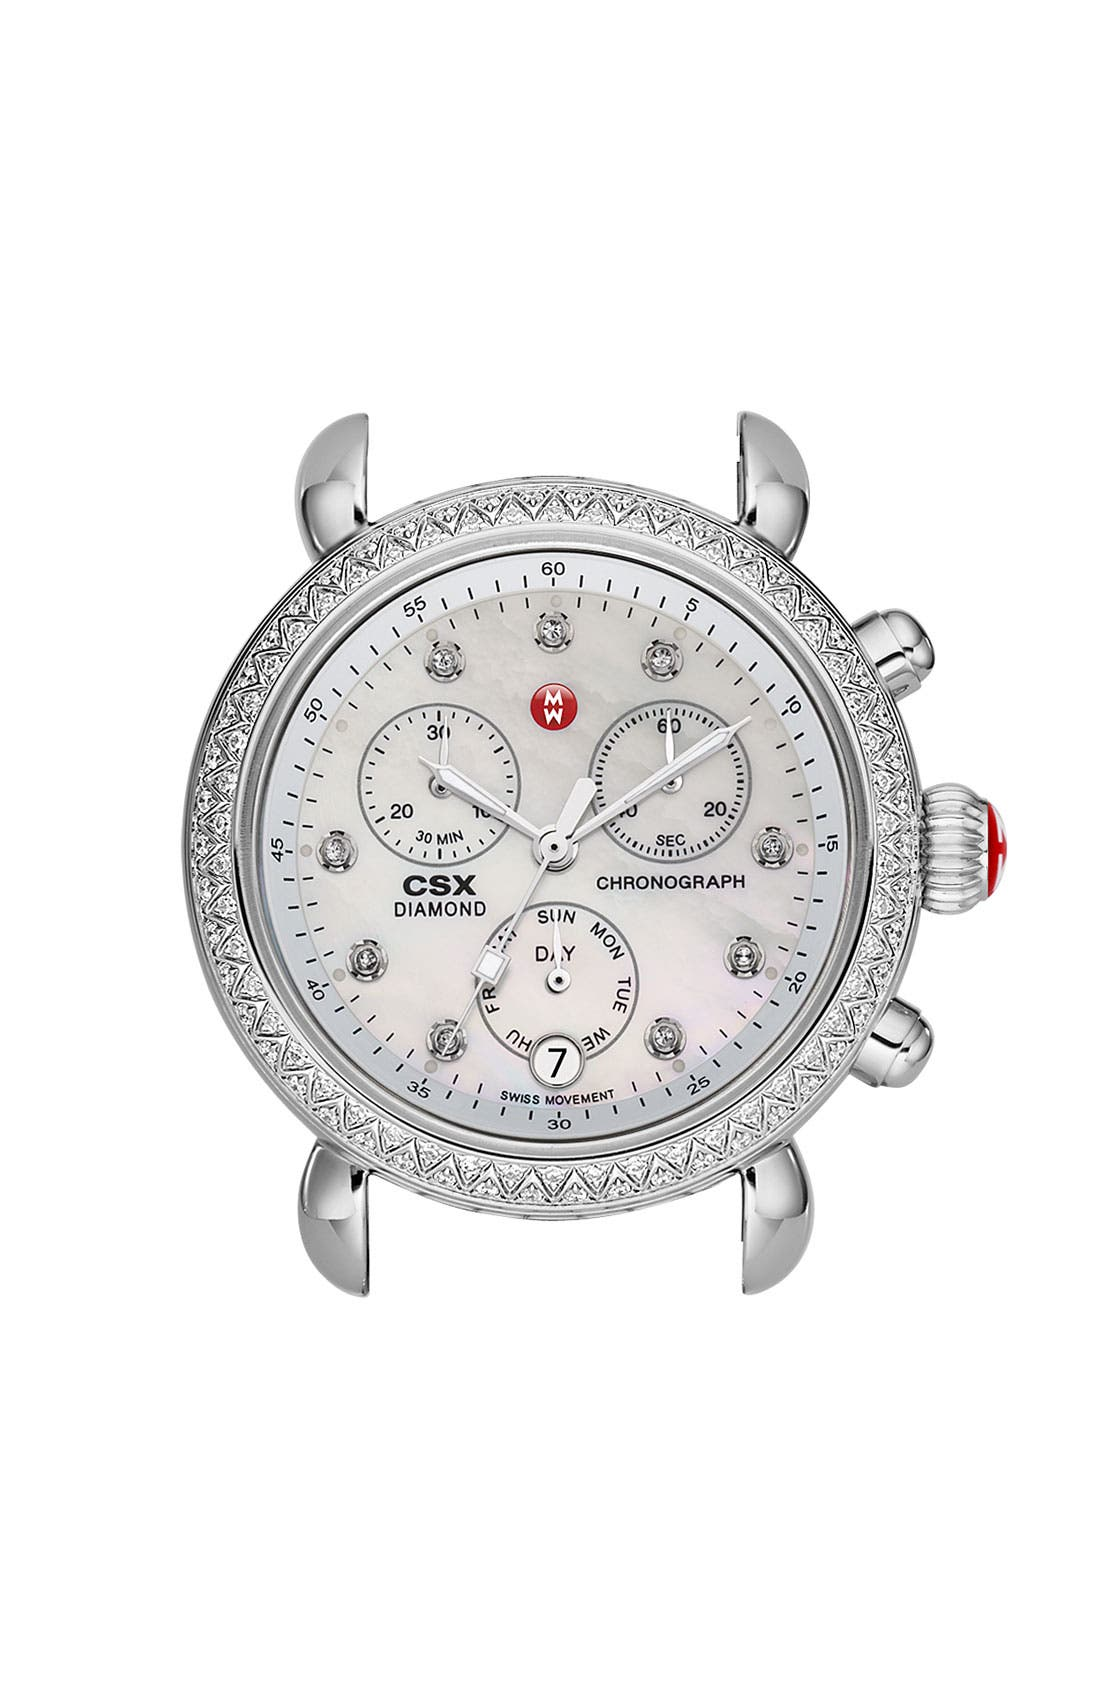 Alternate Image 1 Selected - MICHELE 'CSX-36 Diamond' Diamond Dial Two Tone Watch Case, 36mm